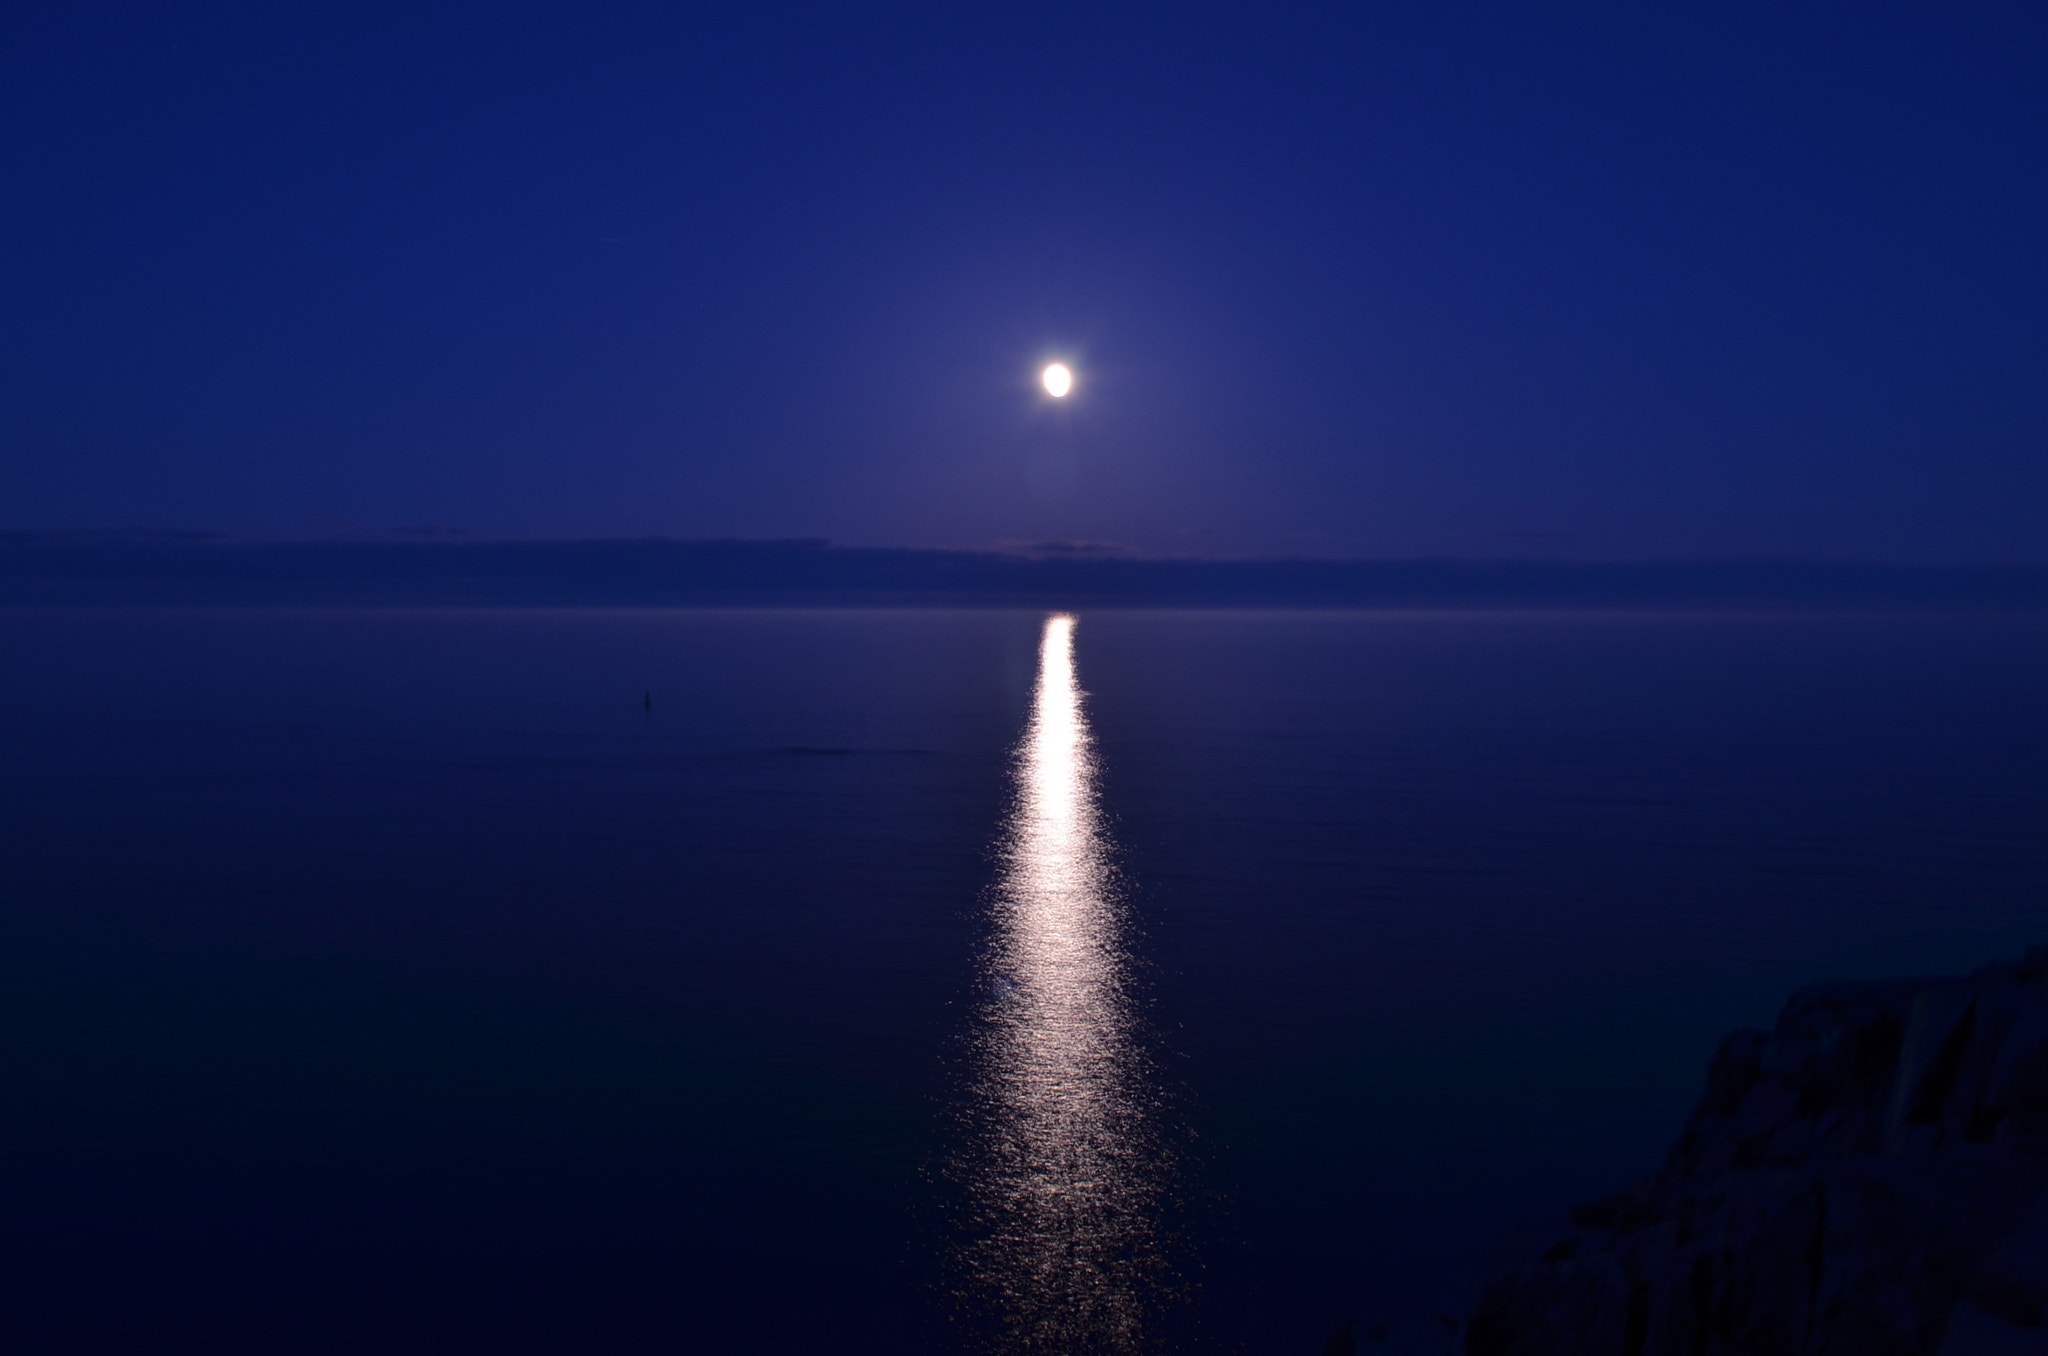 Photograph Once in a Blue Moon by Sean Beaulieu on 500px